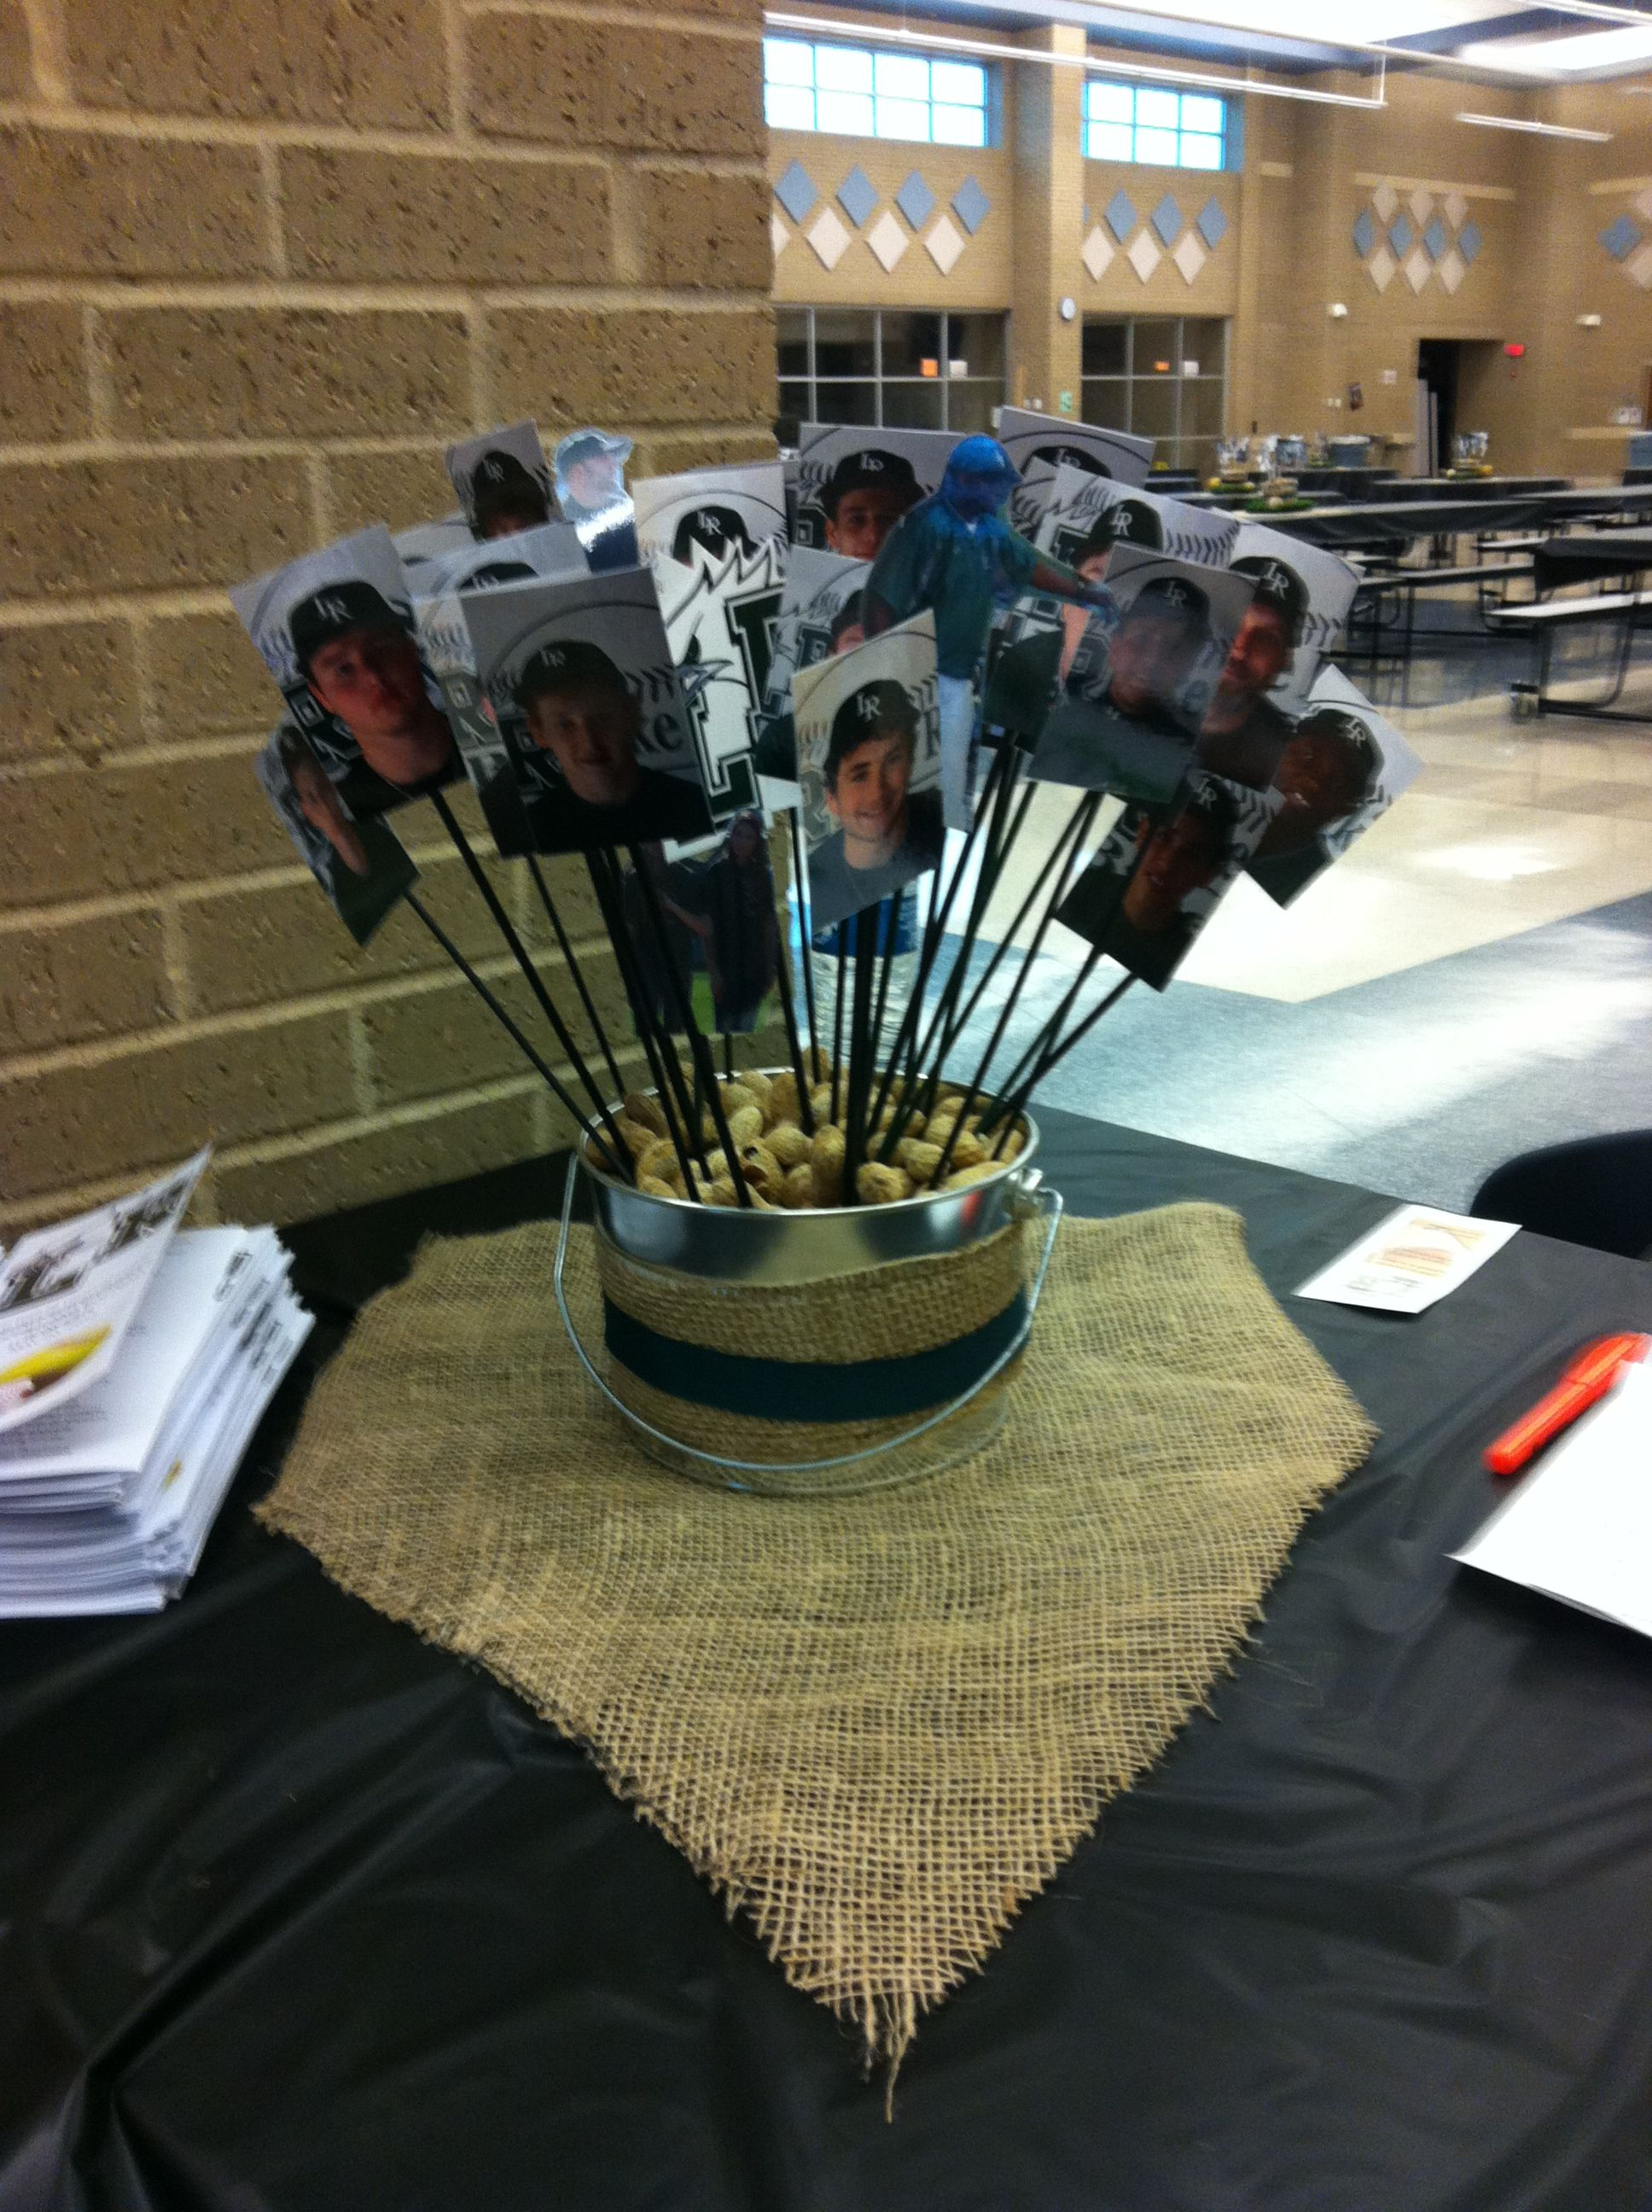 Baseball banquet decorations pinterest